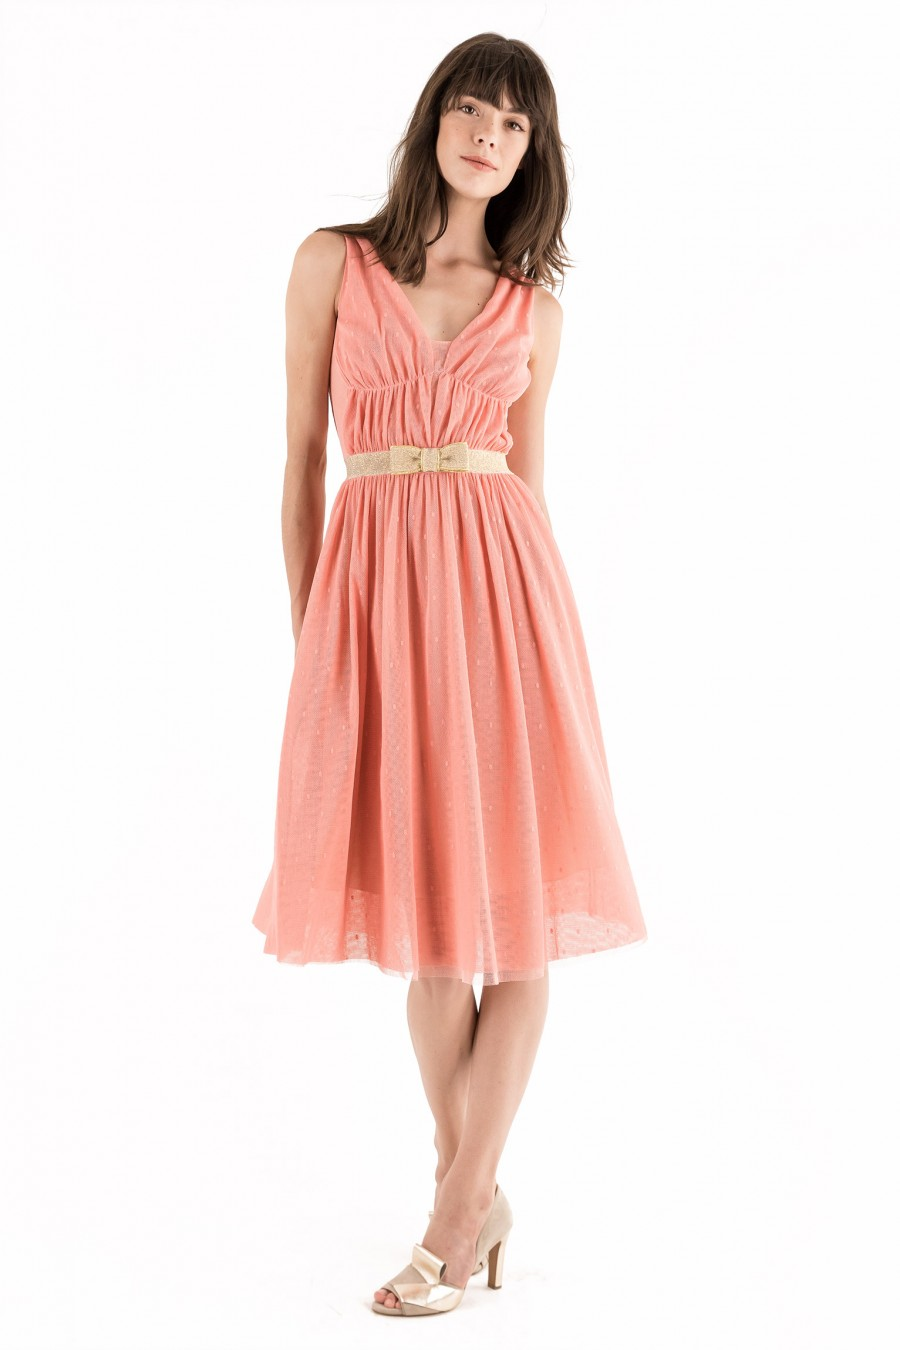 Gold and peach tulle dress